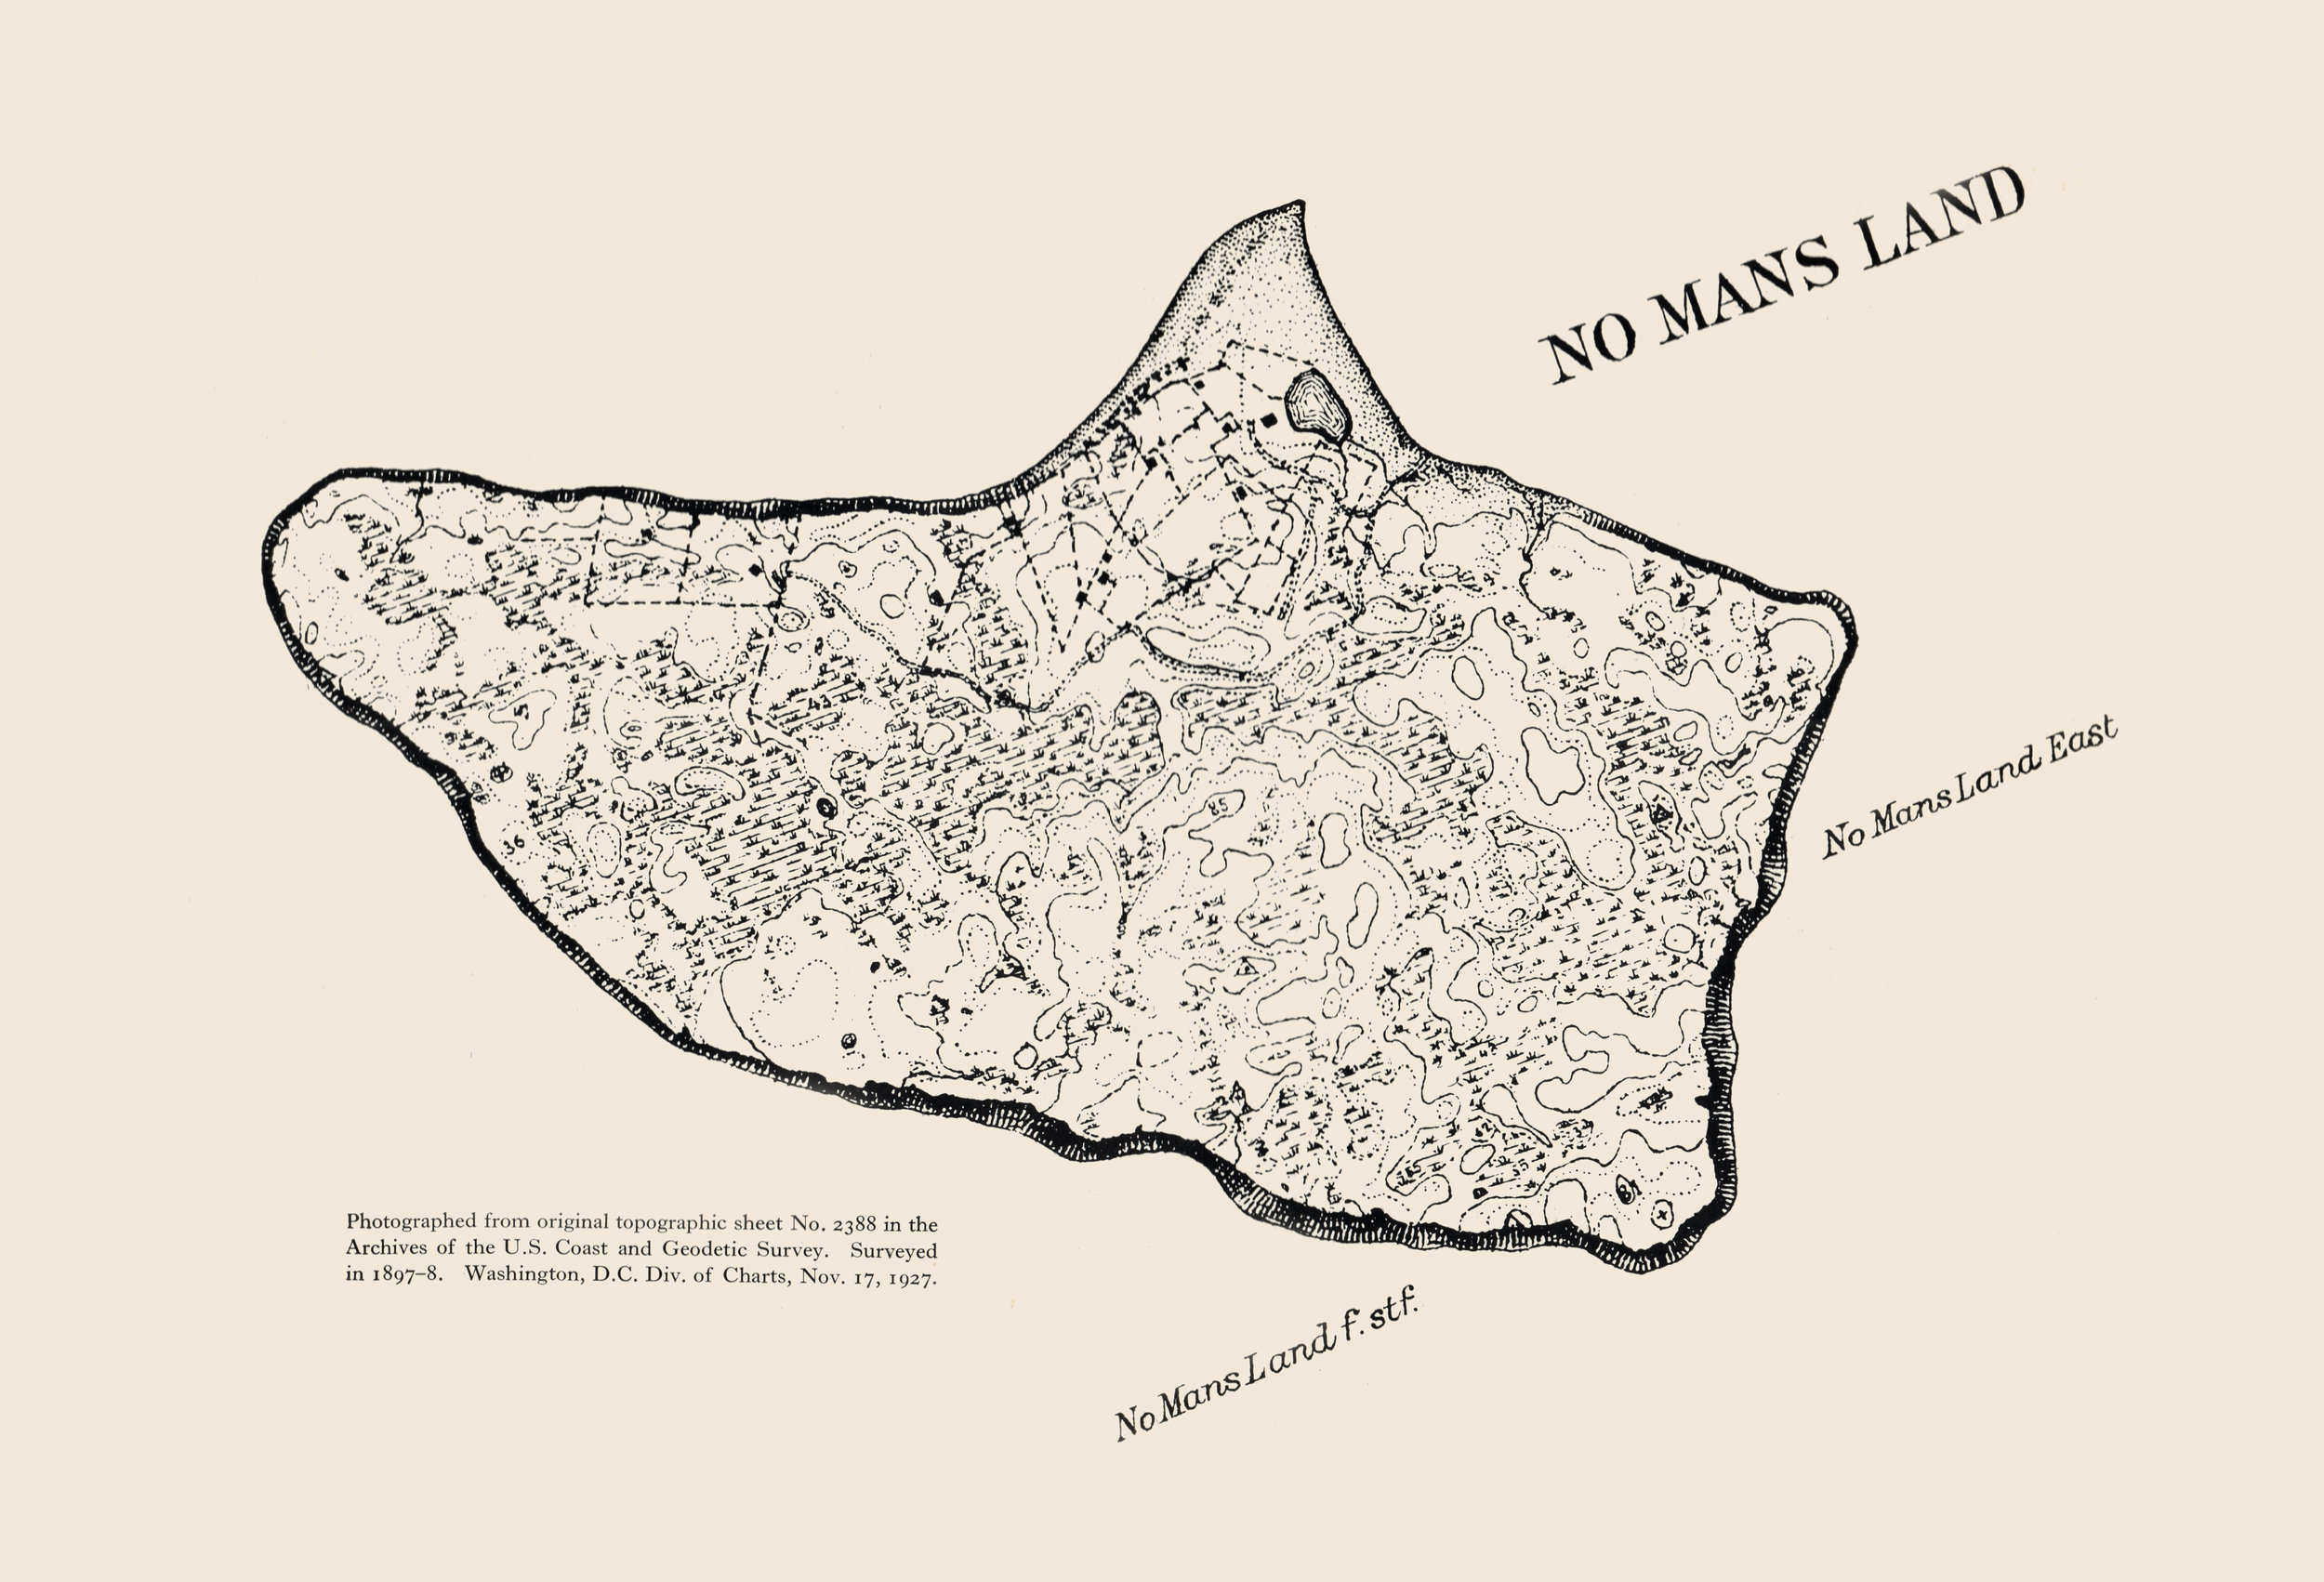 Topographic map of Nomans from the 1897-1898 USGS survey.